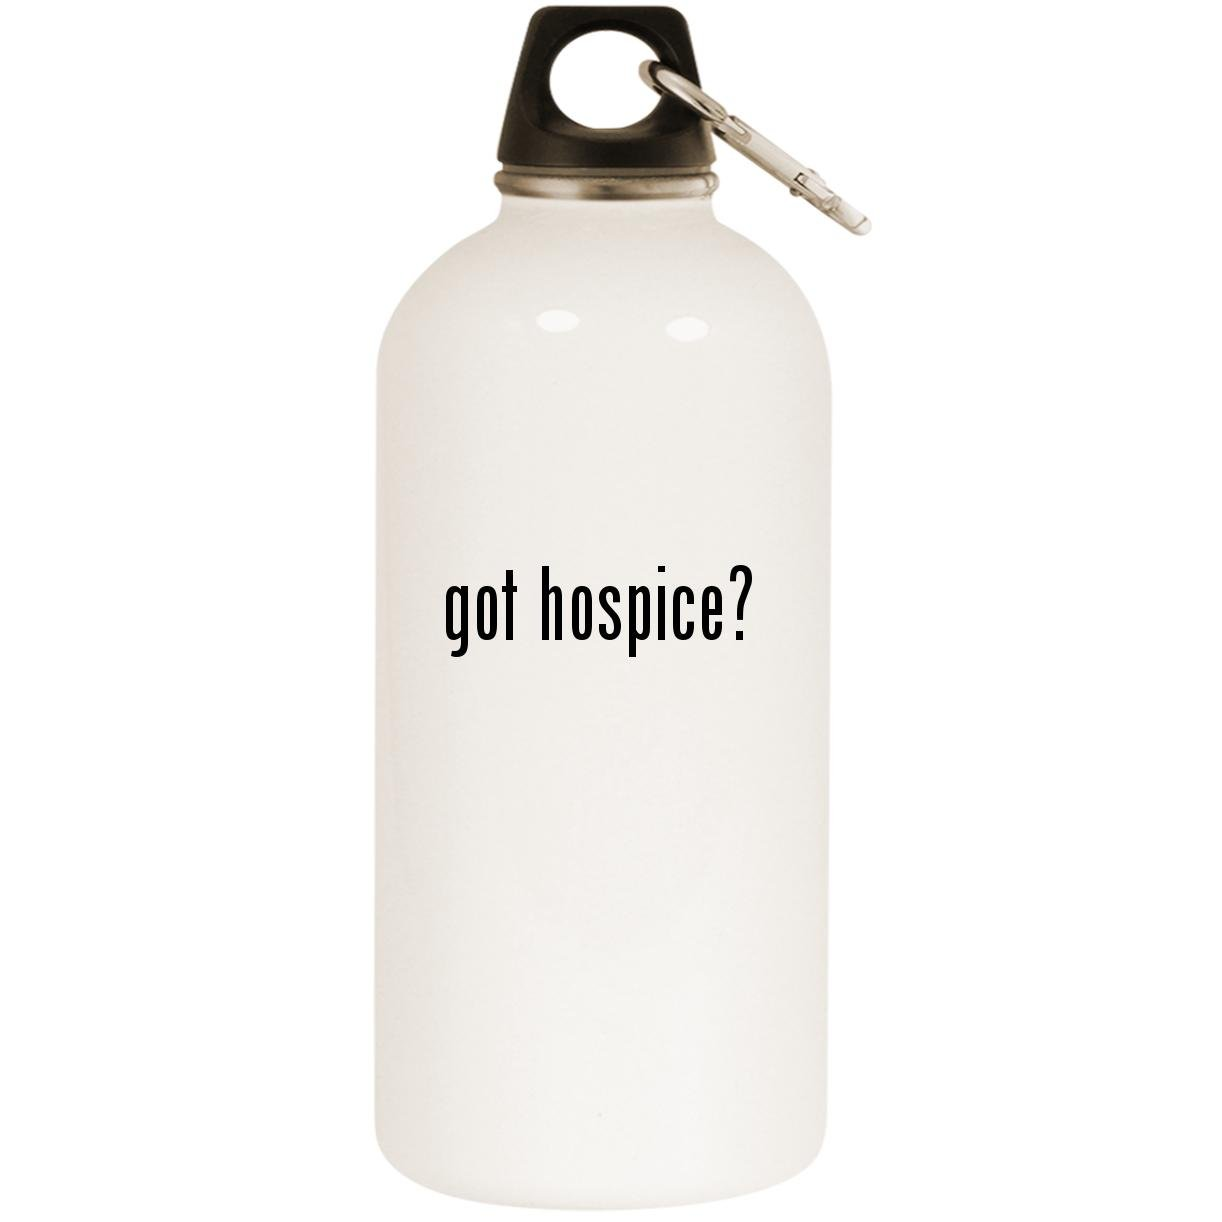 got hospice? - White 20oz Stainless Steel Water Bottle with Carabiner